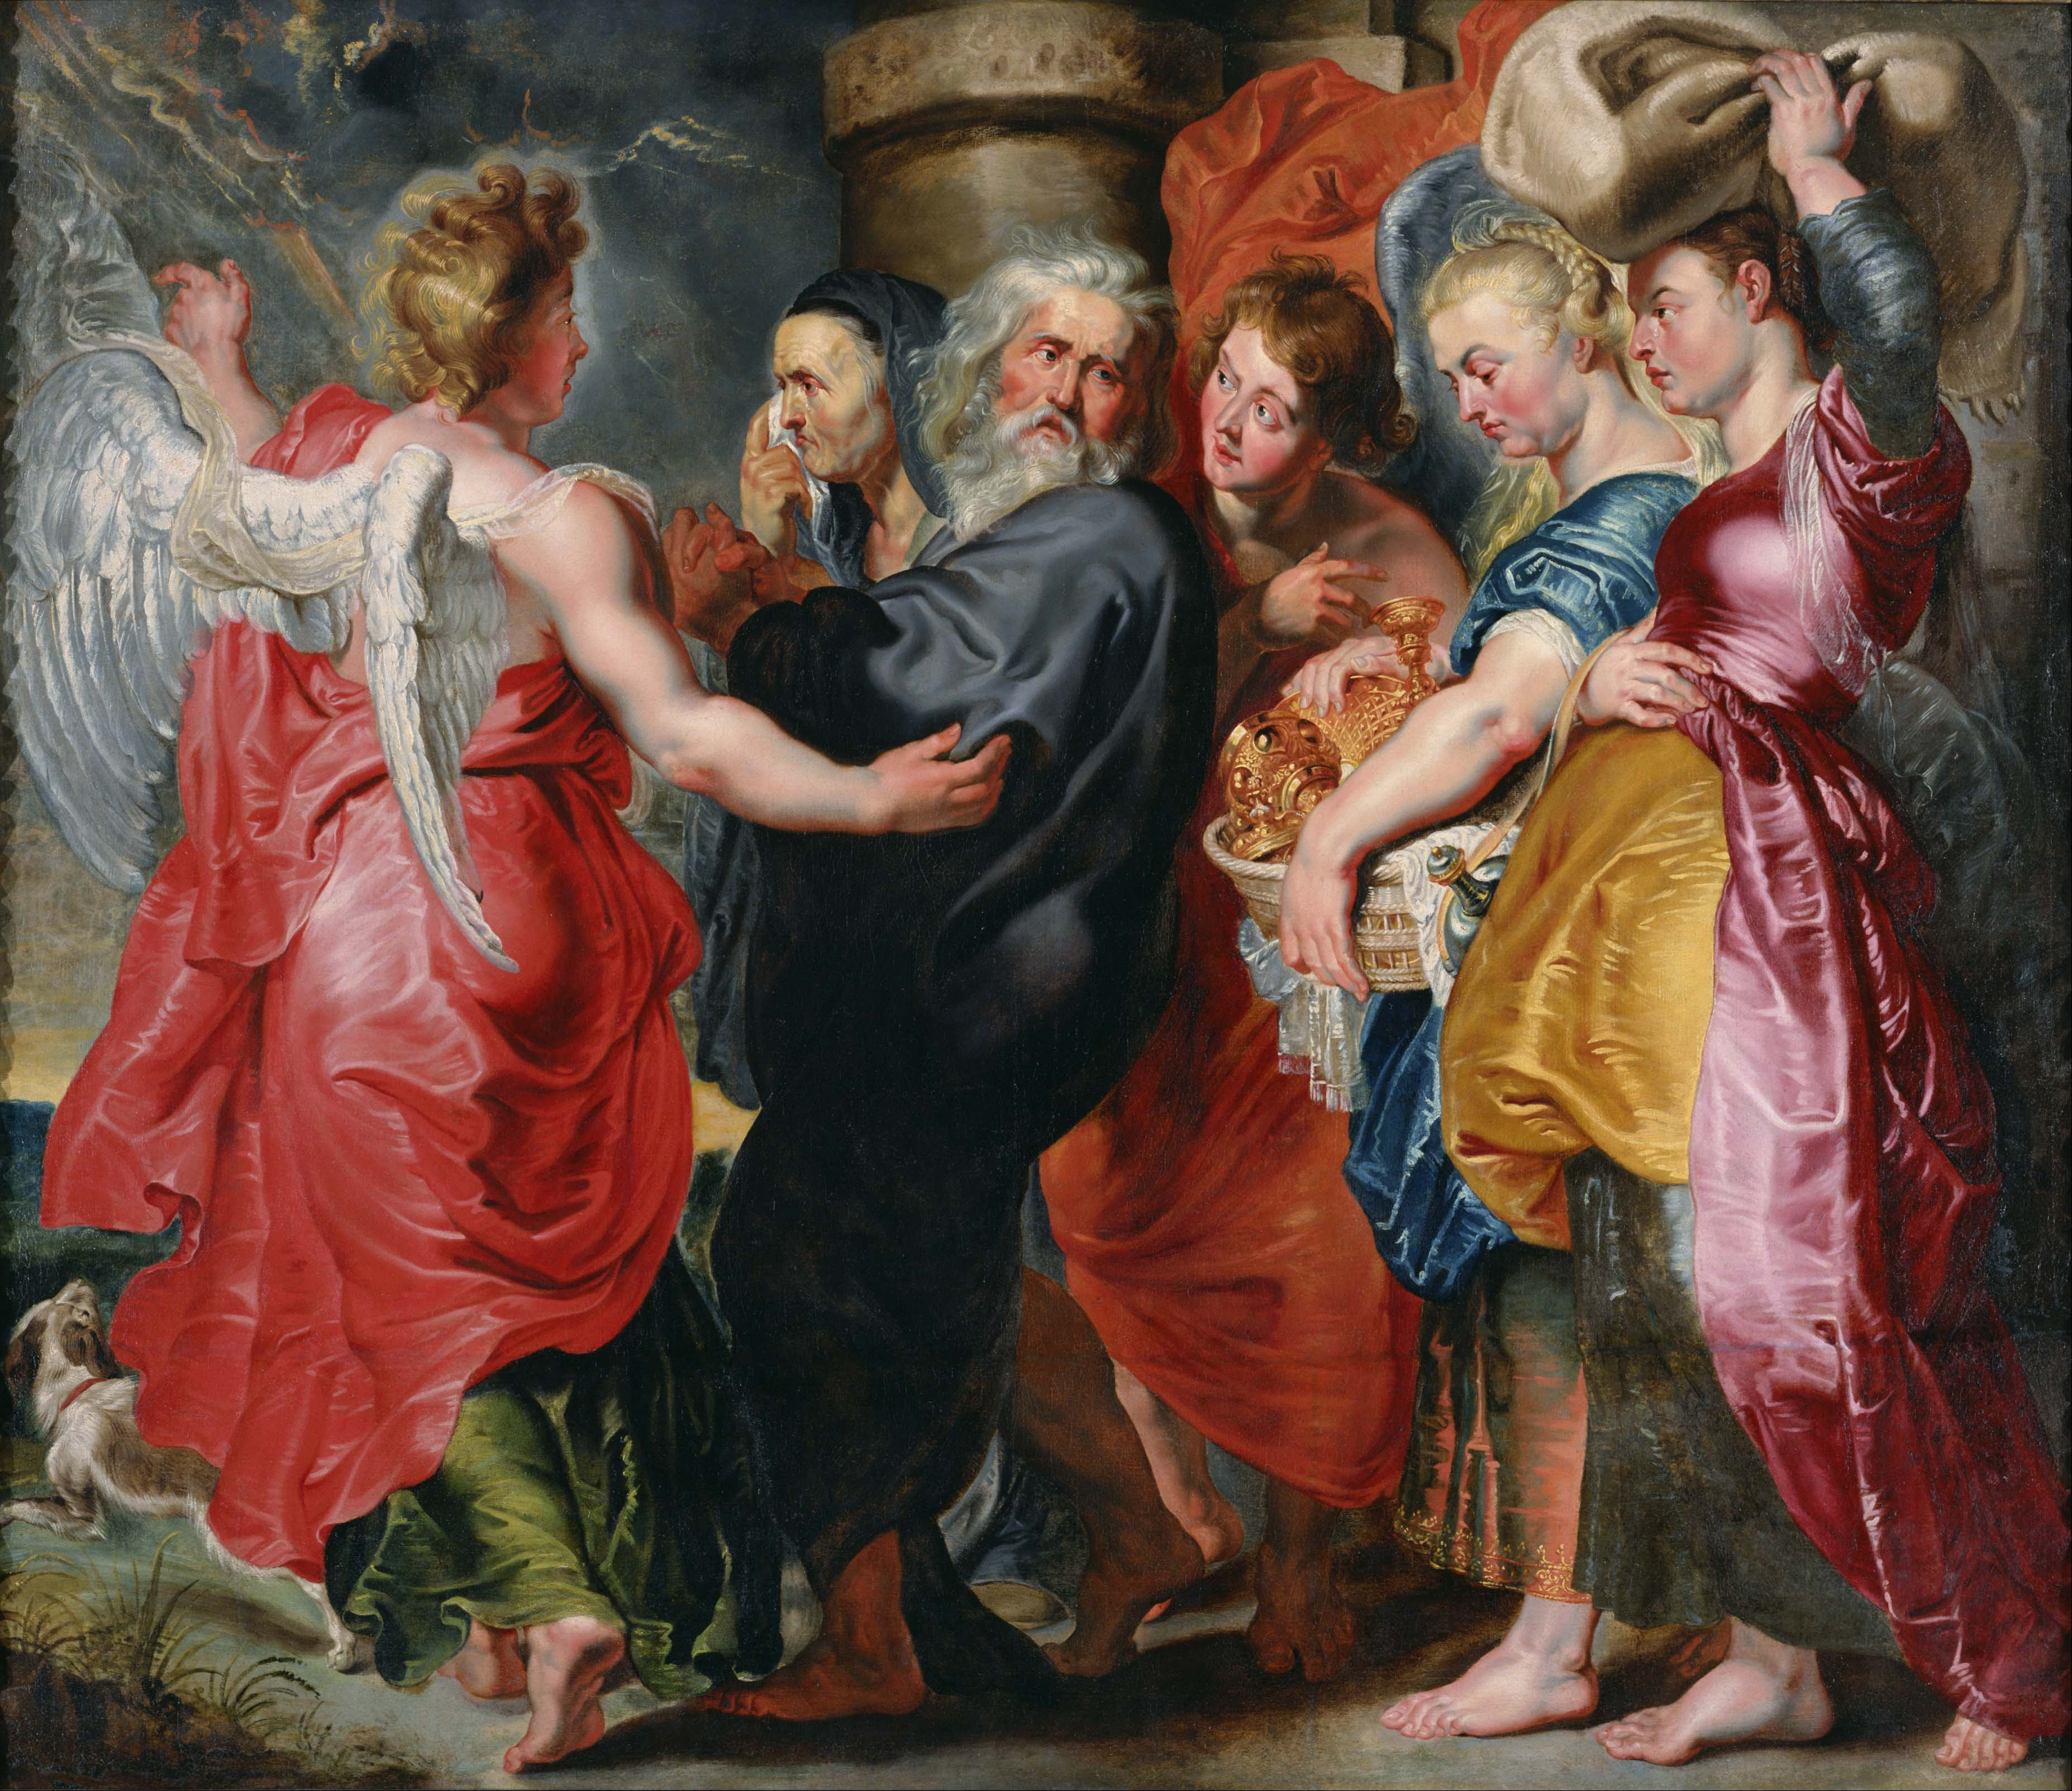 Jacob Jordaens: paintings with titles and descriptions 37